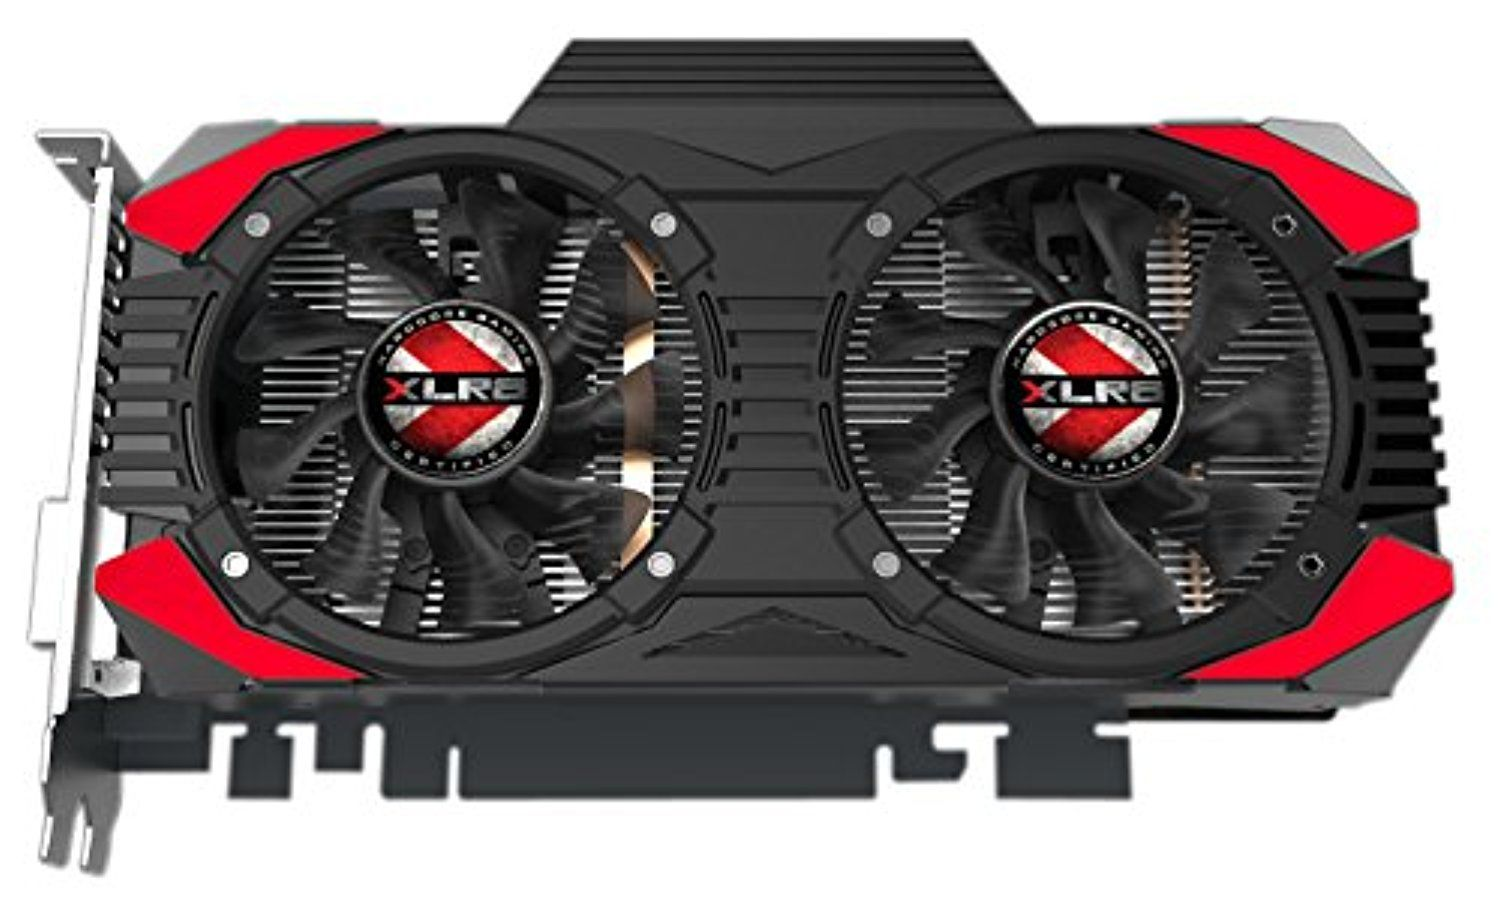 Pny Geforce Gtx 1060 6gb Xlr8 Gaming Overclocked Edition Vcggtx10606xgpb Oc Graphics Cards Awesome Products Selecte Graphic Card Nvidia Cool Things To Buy